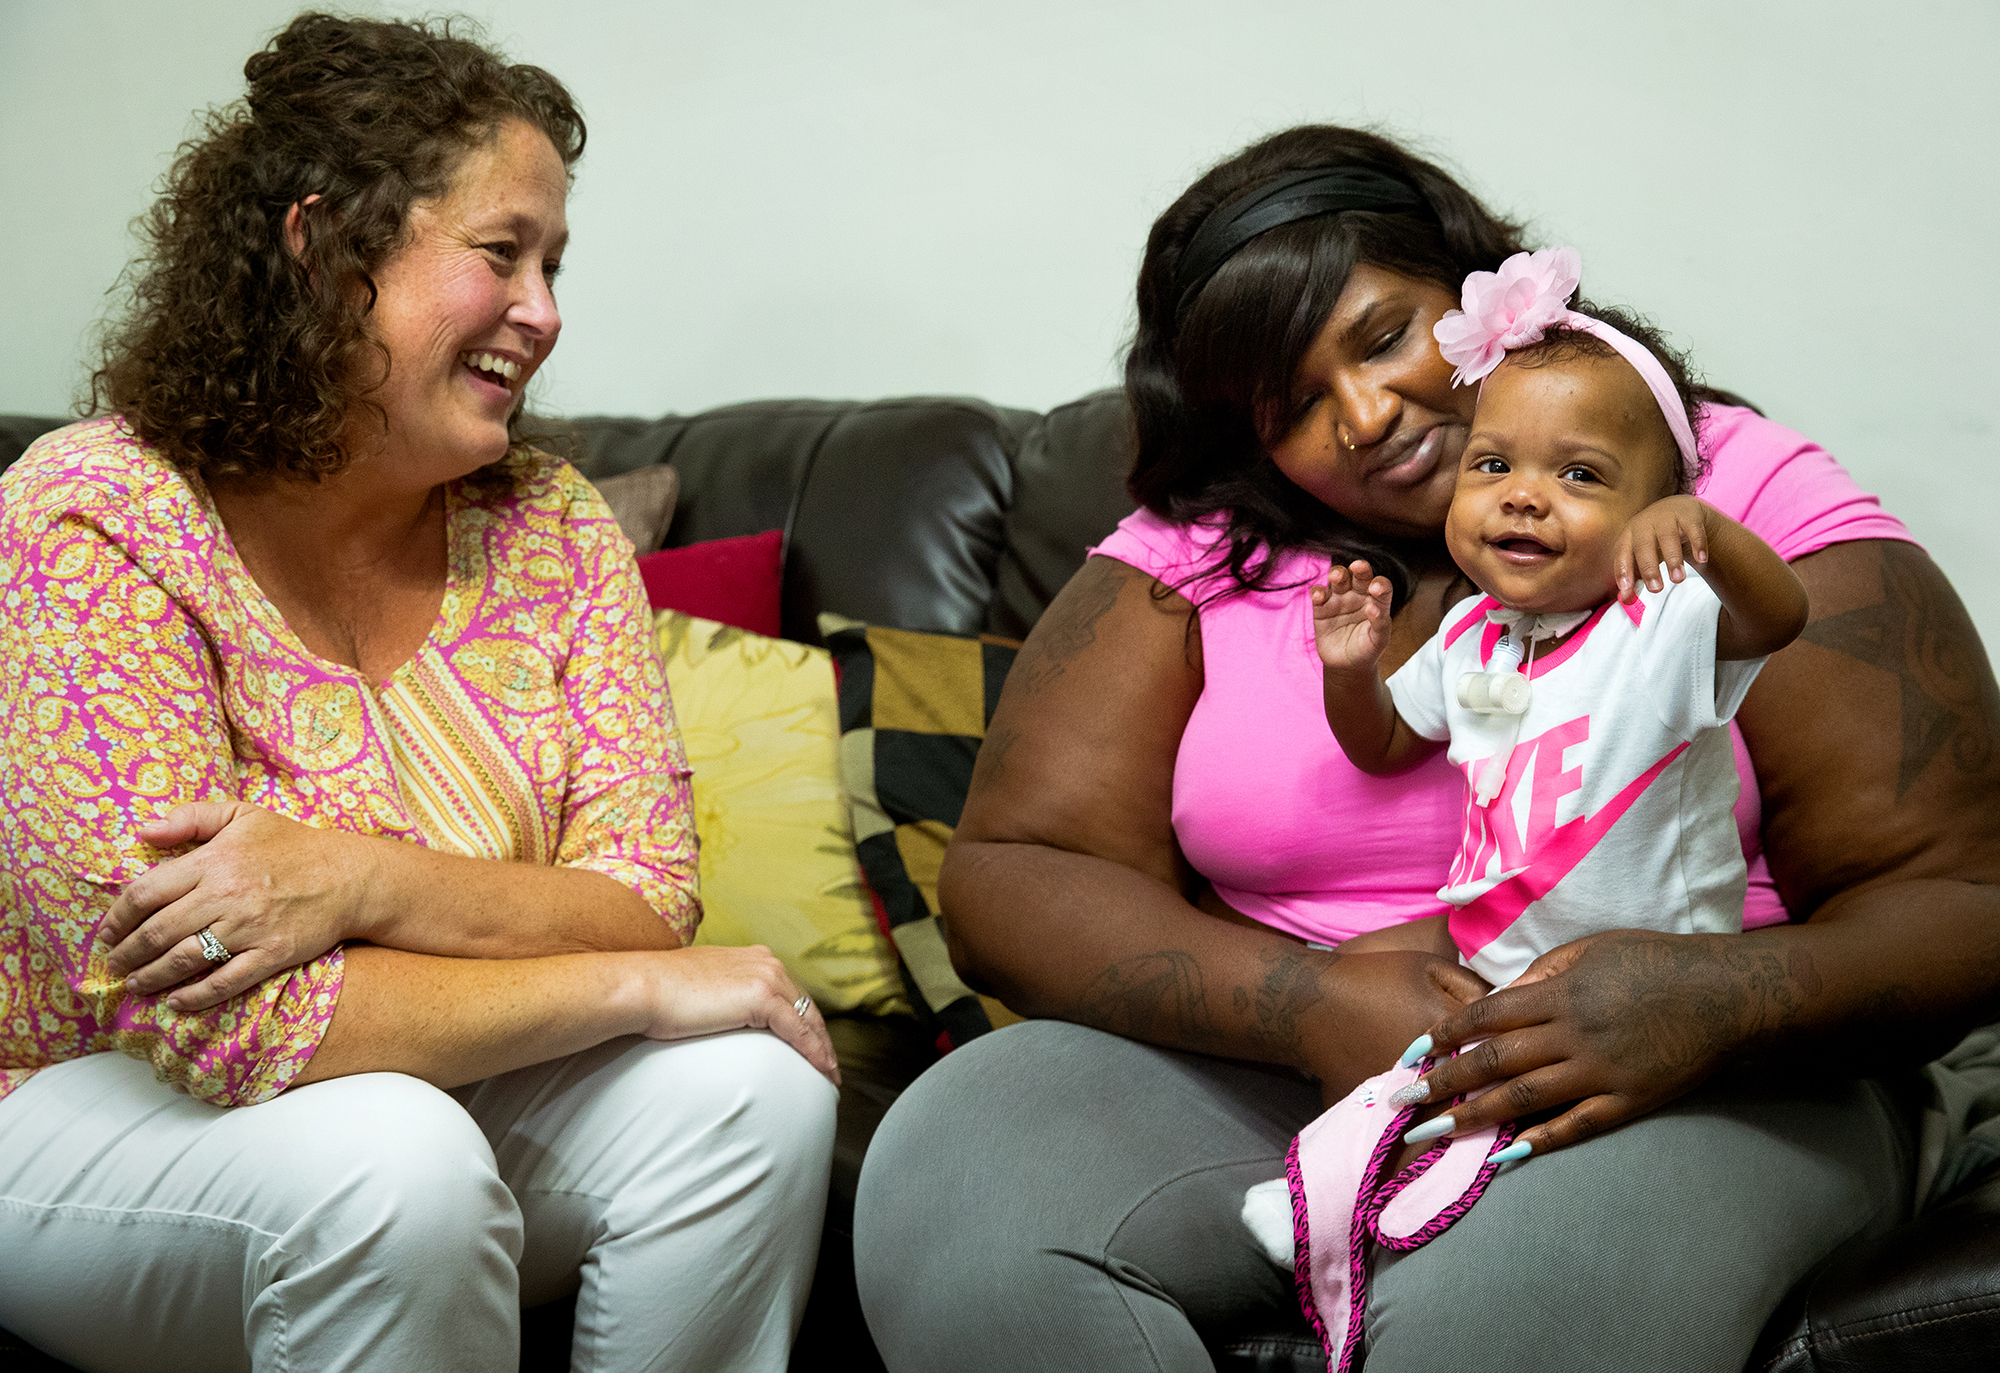 Katie Stauffer RN, head nurse of HSHS St. John's Children's Hospital's Beyond the NICU program, laughs as Tracy Williams' 14-month-old daughter Triniti smiles and claps while sitting on her lap during an interview Friday, Sept. 14, 2018. Triniti was born premature and spent months in the neonatal intensive care unit and receives follow-up care and monitoring through the new program. [Ted Schurter/The State Journal-Register]